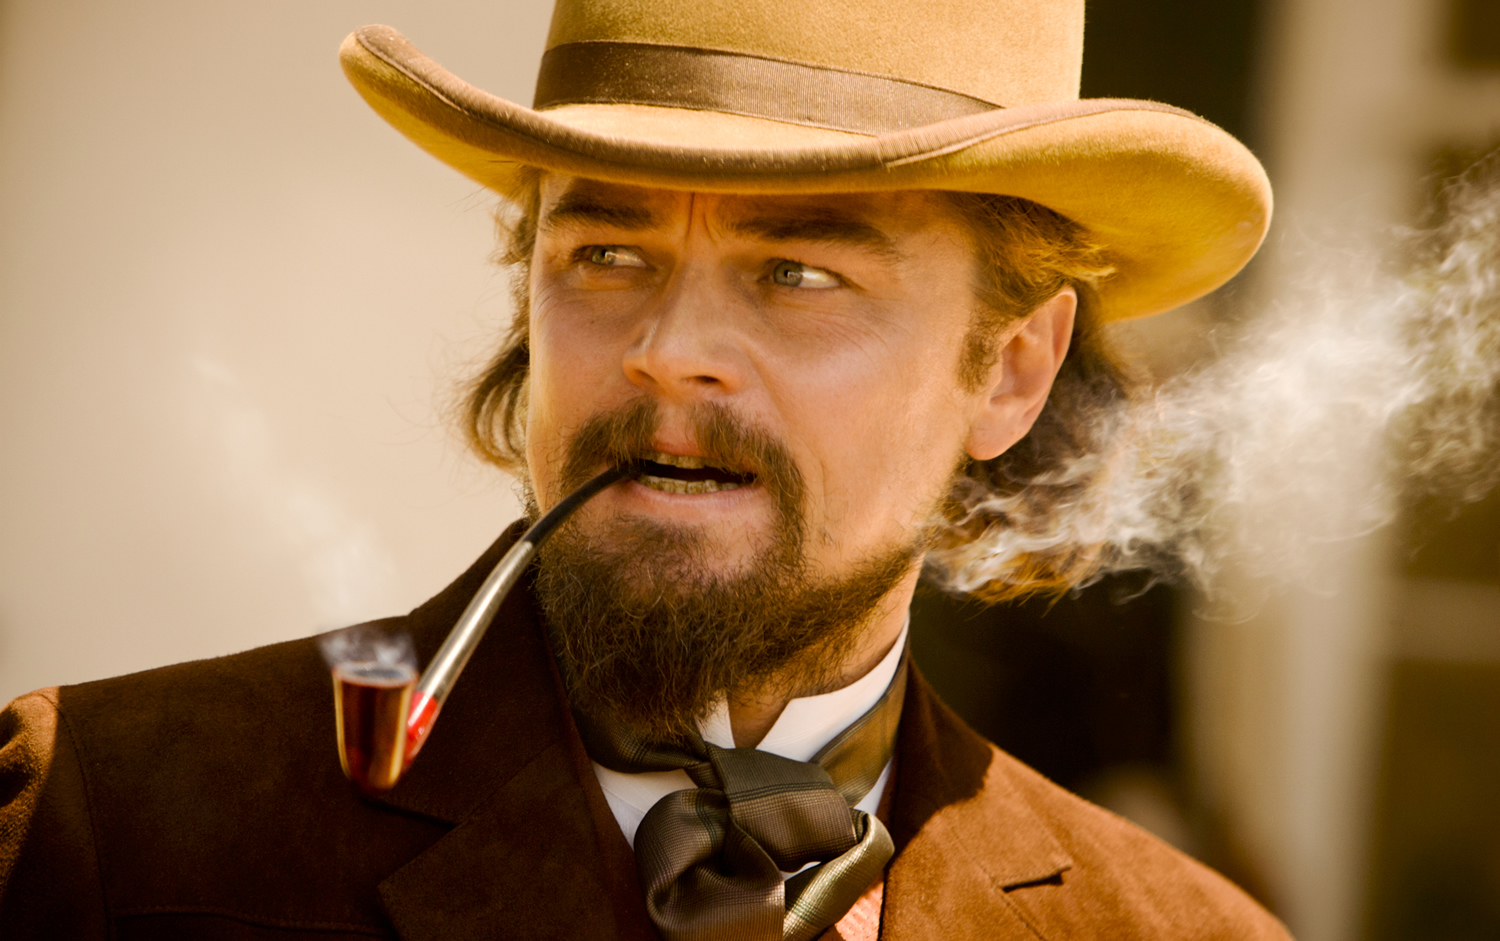 Oh Comely review of Django Unchained (2013), directed by Quentin Tarantino and starring Jamie Foxx, Christoph Waltz and Leonardo DiCaprio.